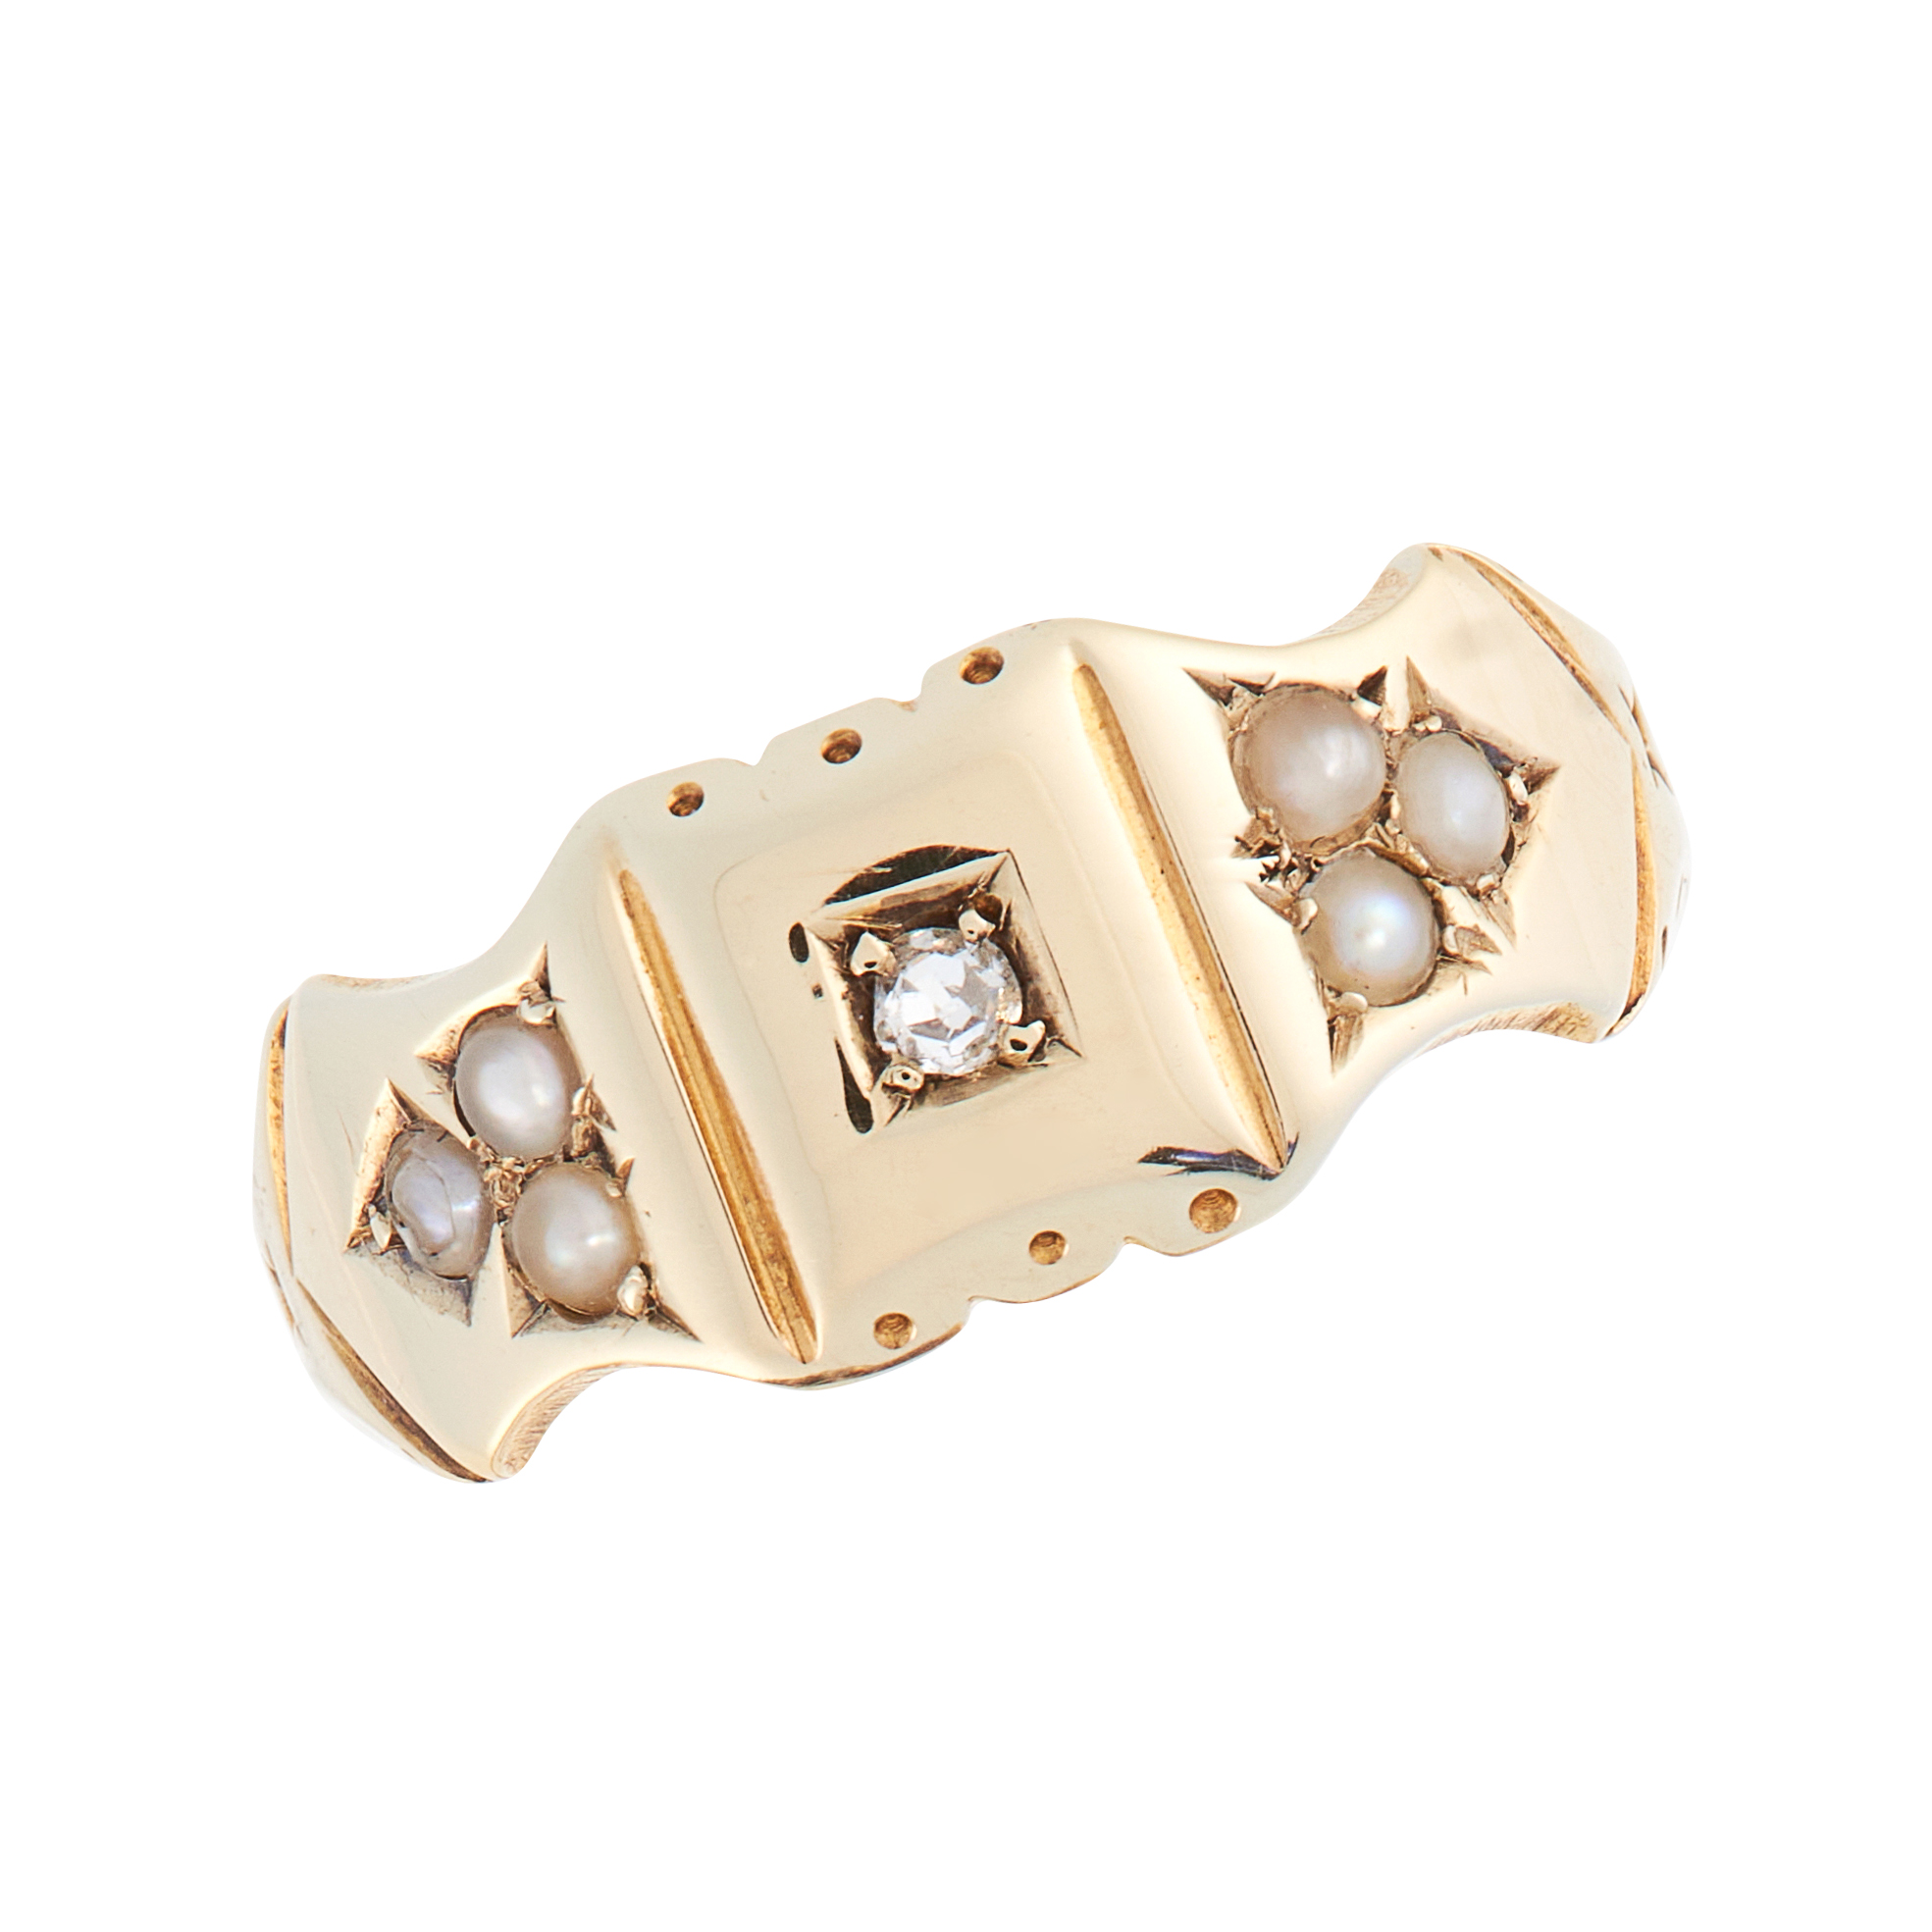 AN ANTIQUE VICTORIAN DIAMOND AND PEARL DRESS RING, 1888 in 15ct yellow gold, set with a single cut